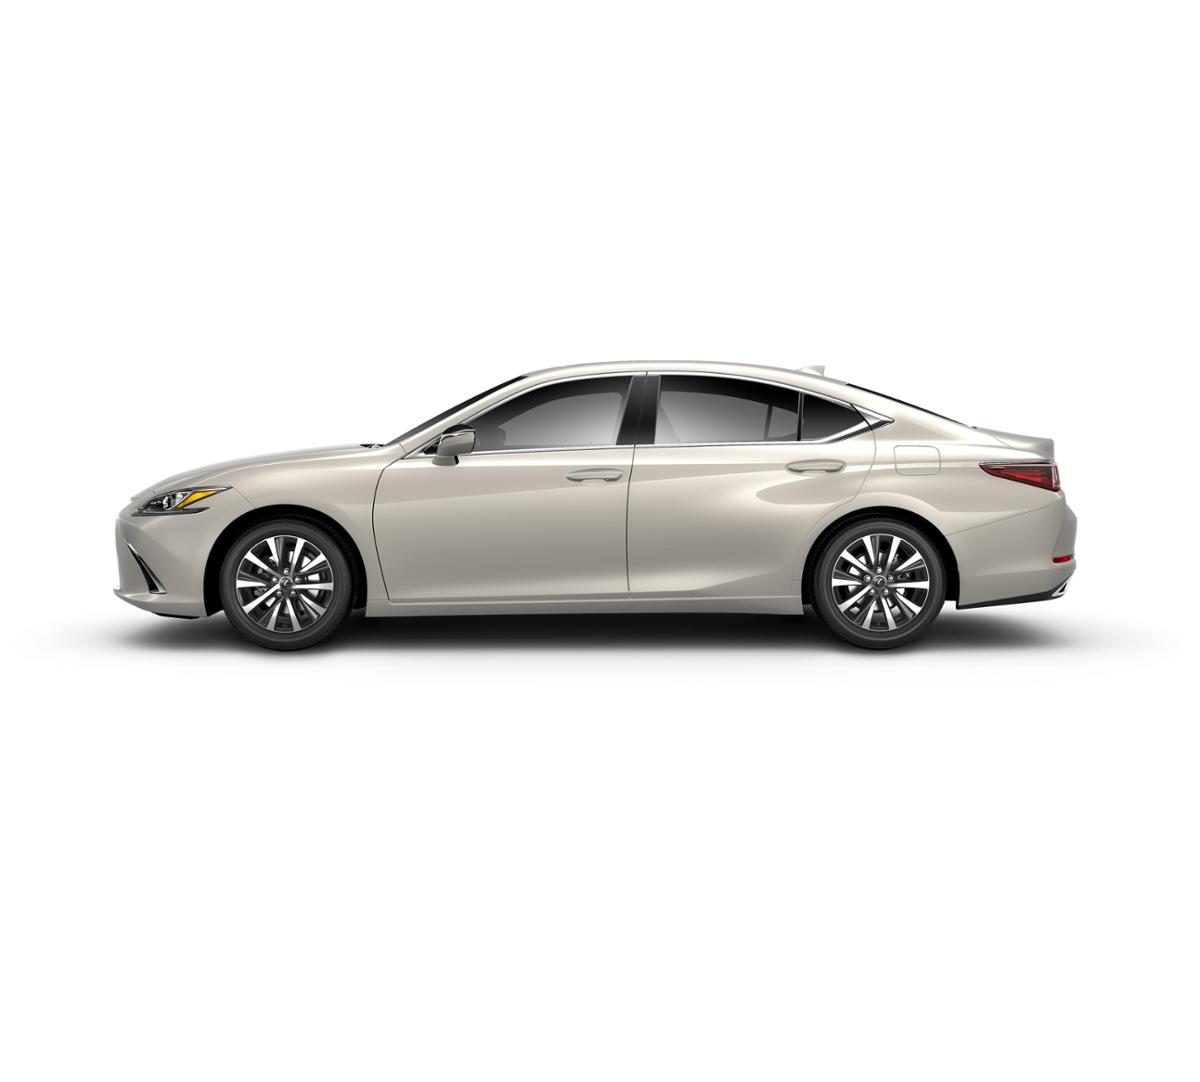 Lexus Sales: New 2019 Lexus ES 350 At New Country Lexus Of Latham, Your